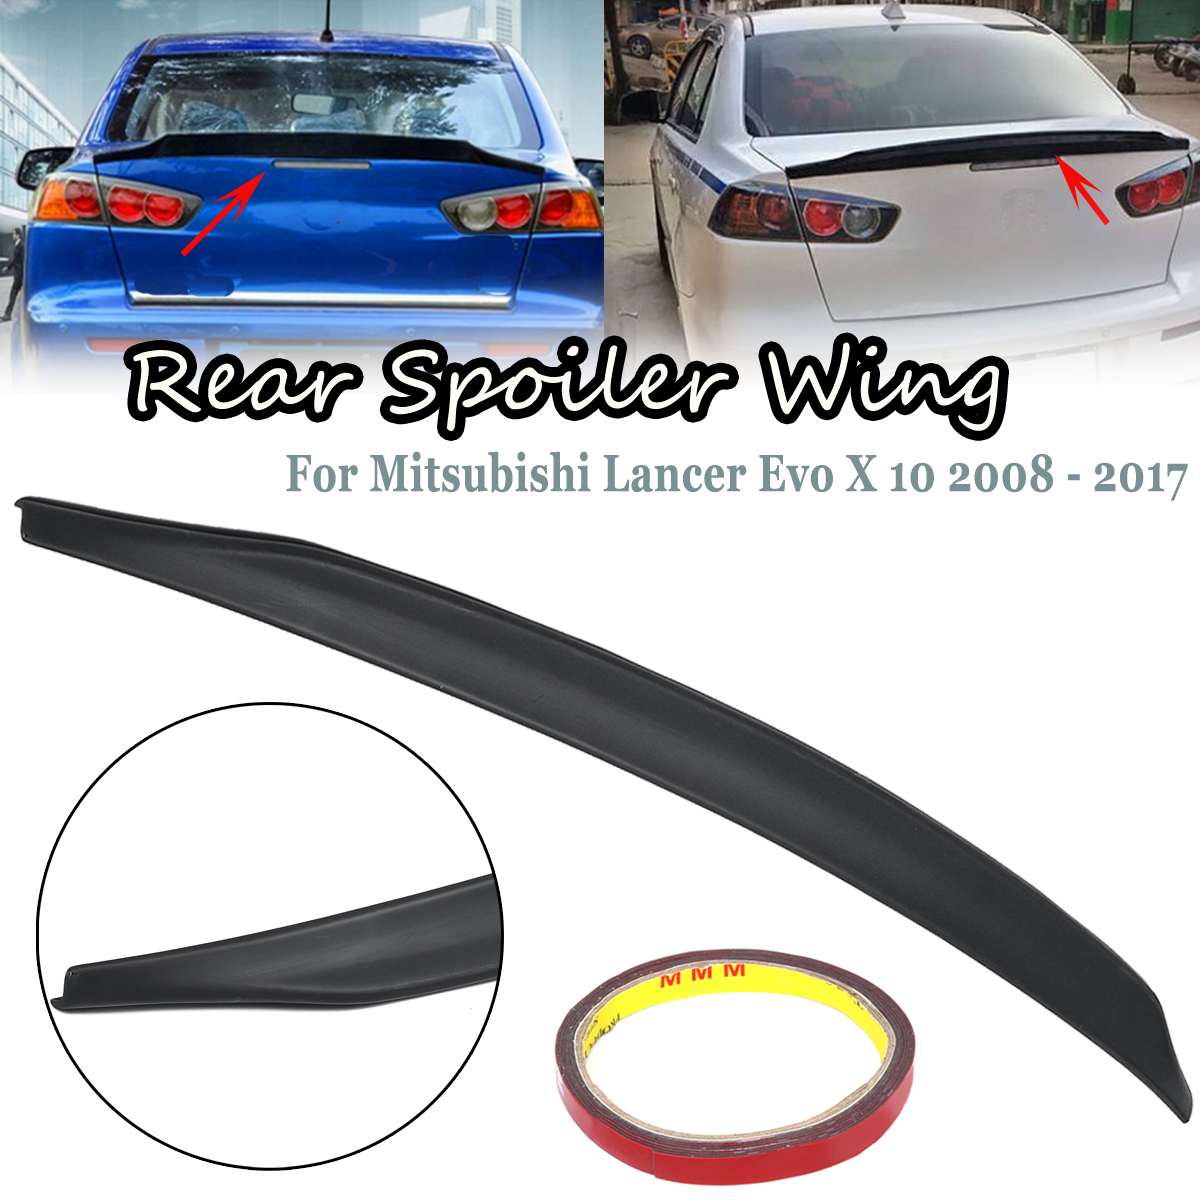 Primer ABS Rear Trunk Spoiler Downforce Wing For 2008-2013 Mitsubishi Lancer